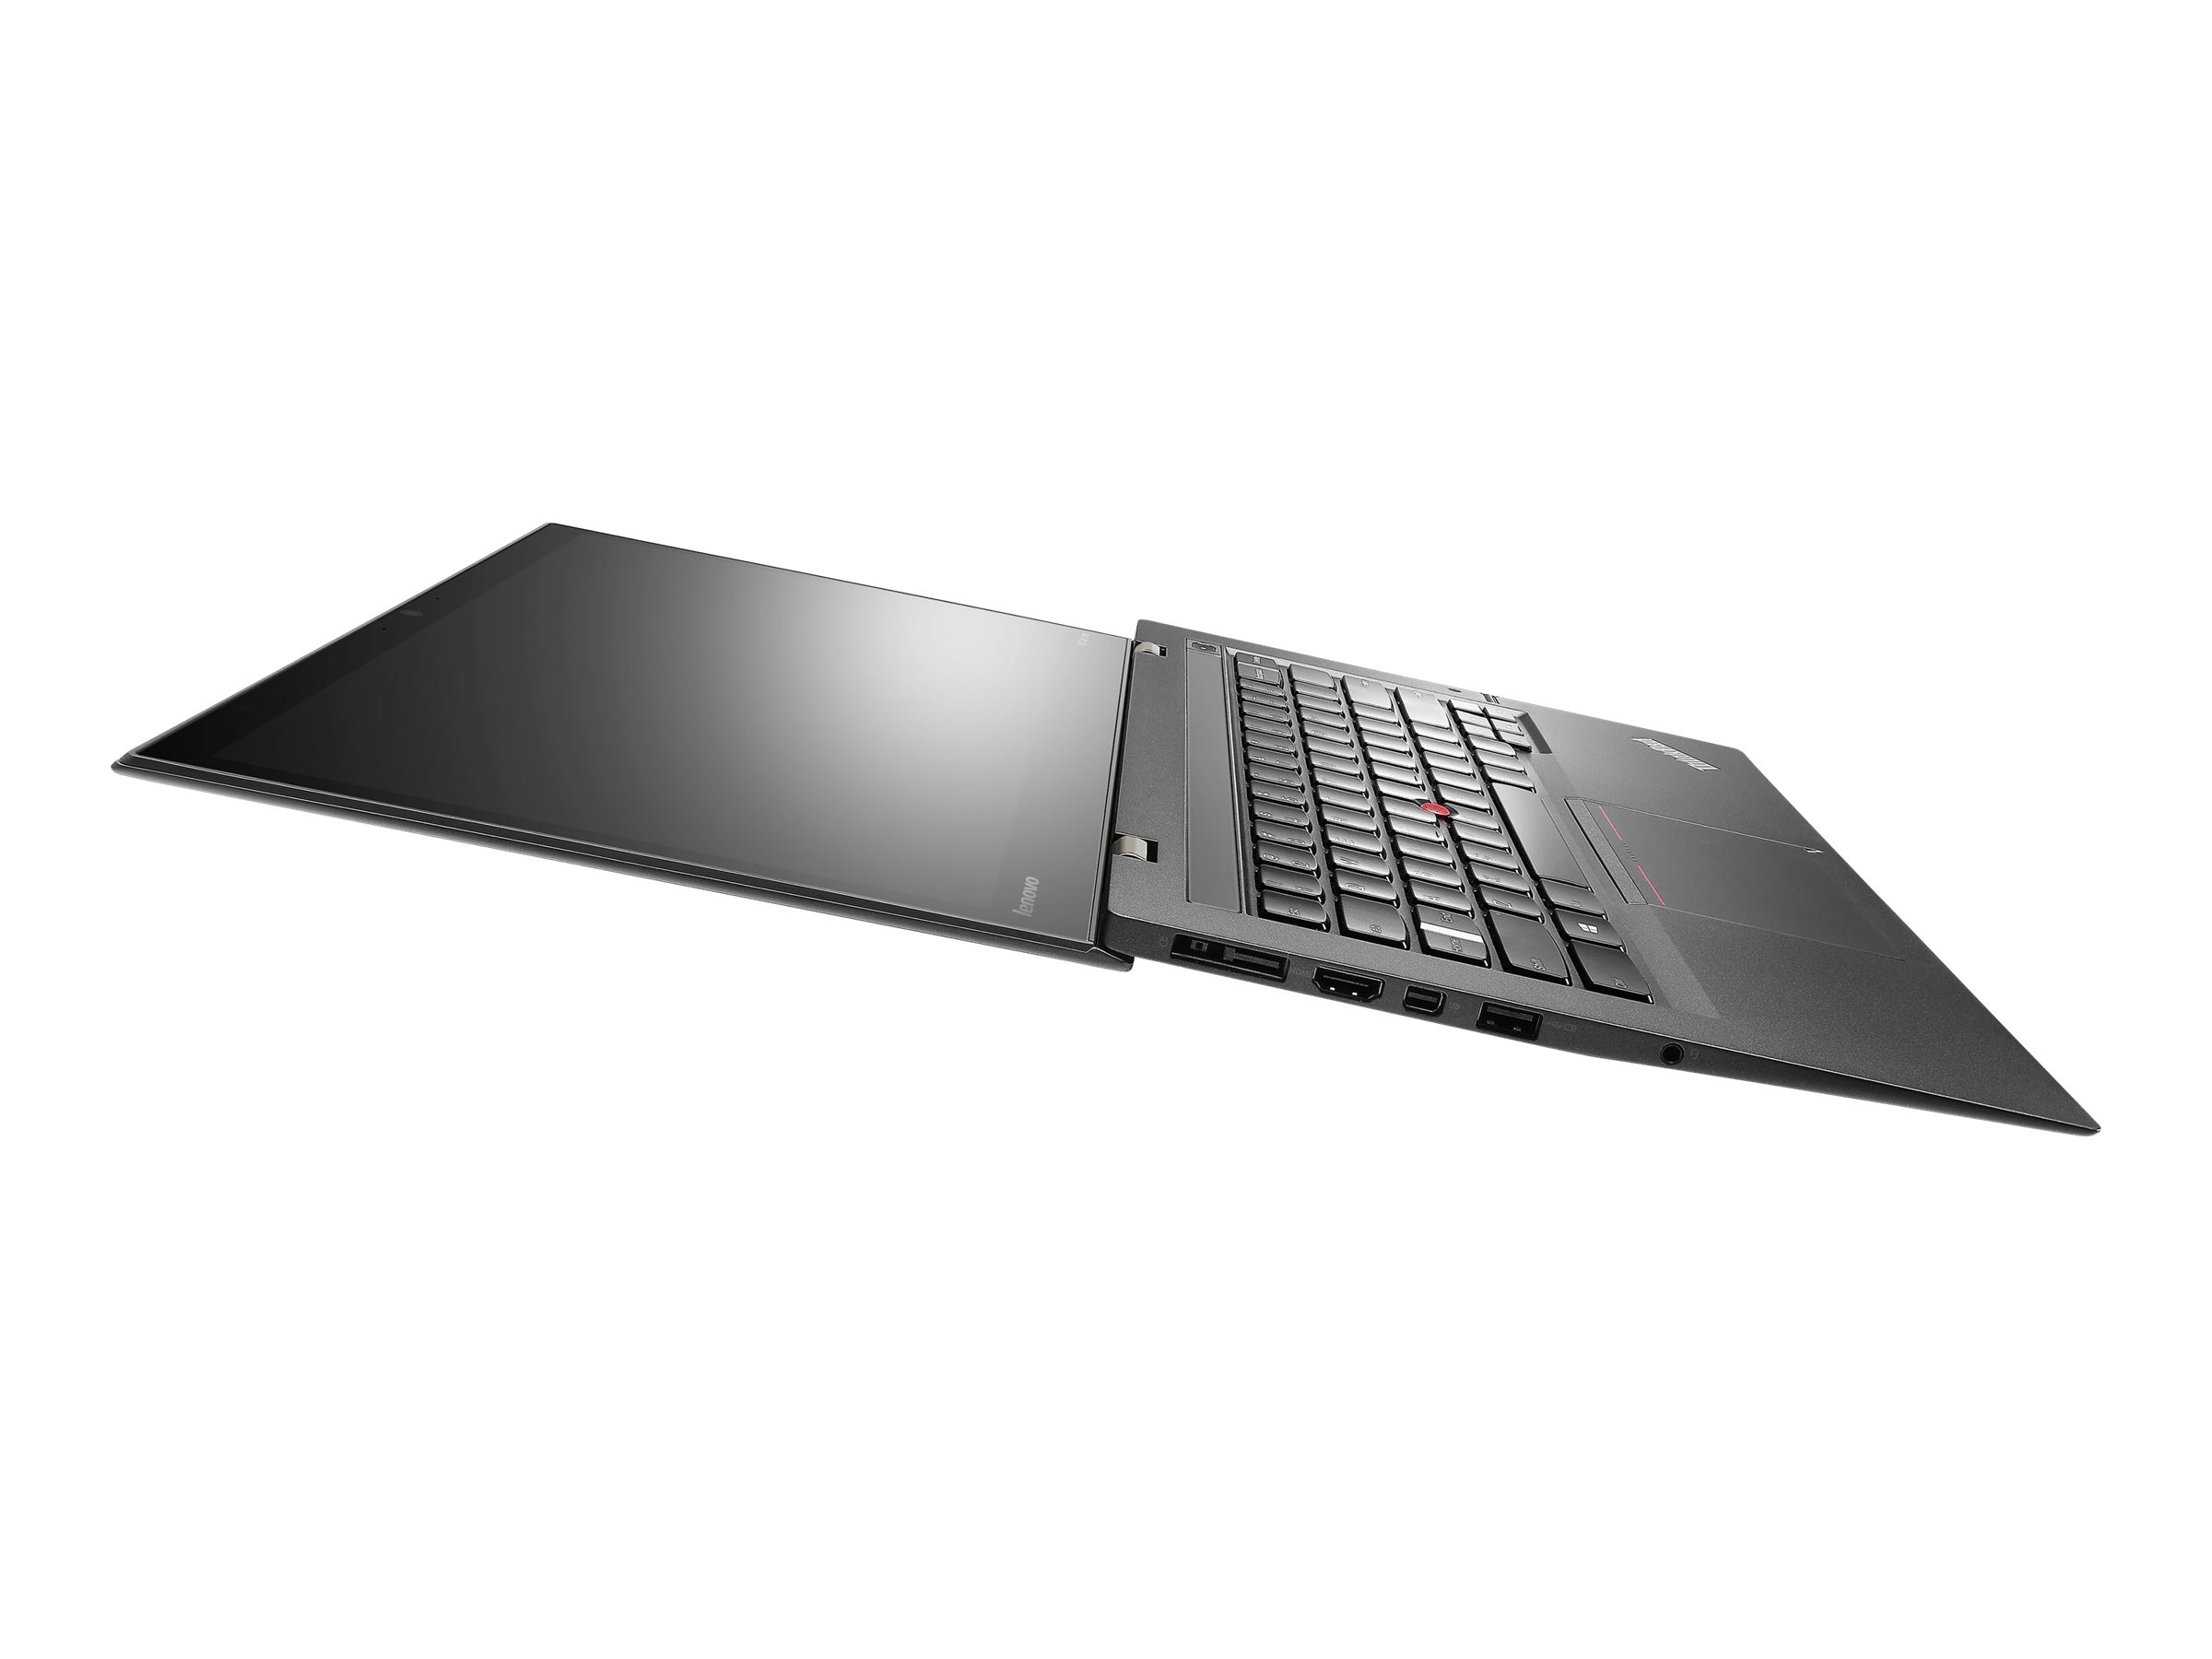 Lenovo ThinkPad X1 Carbon 2.6GHz Core i7 14in display, 20BT003WUS